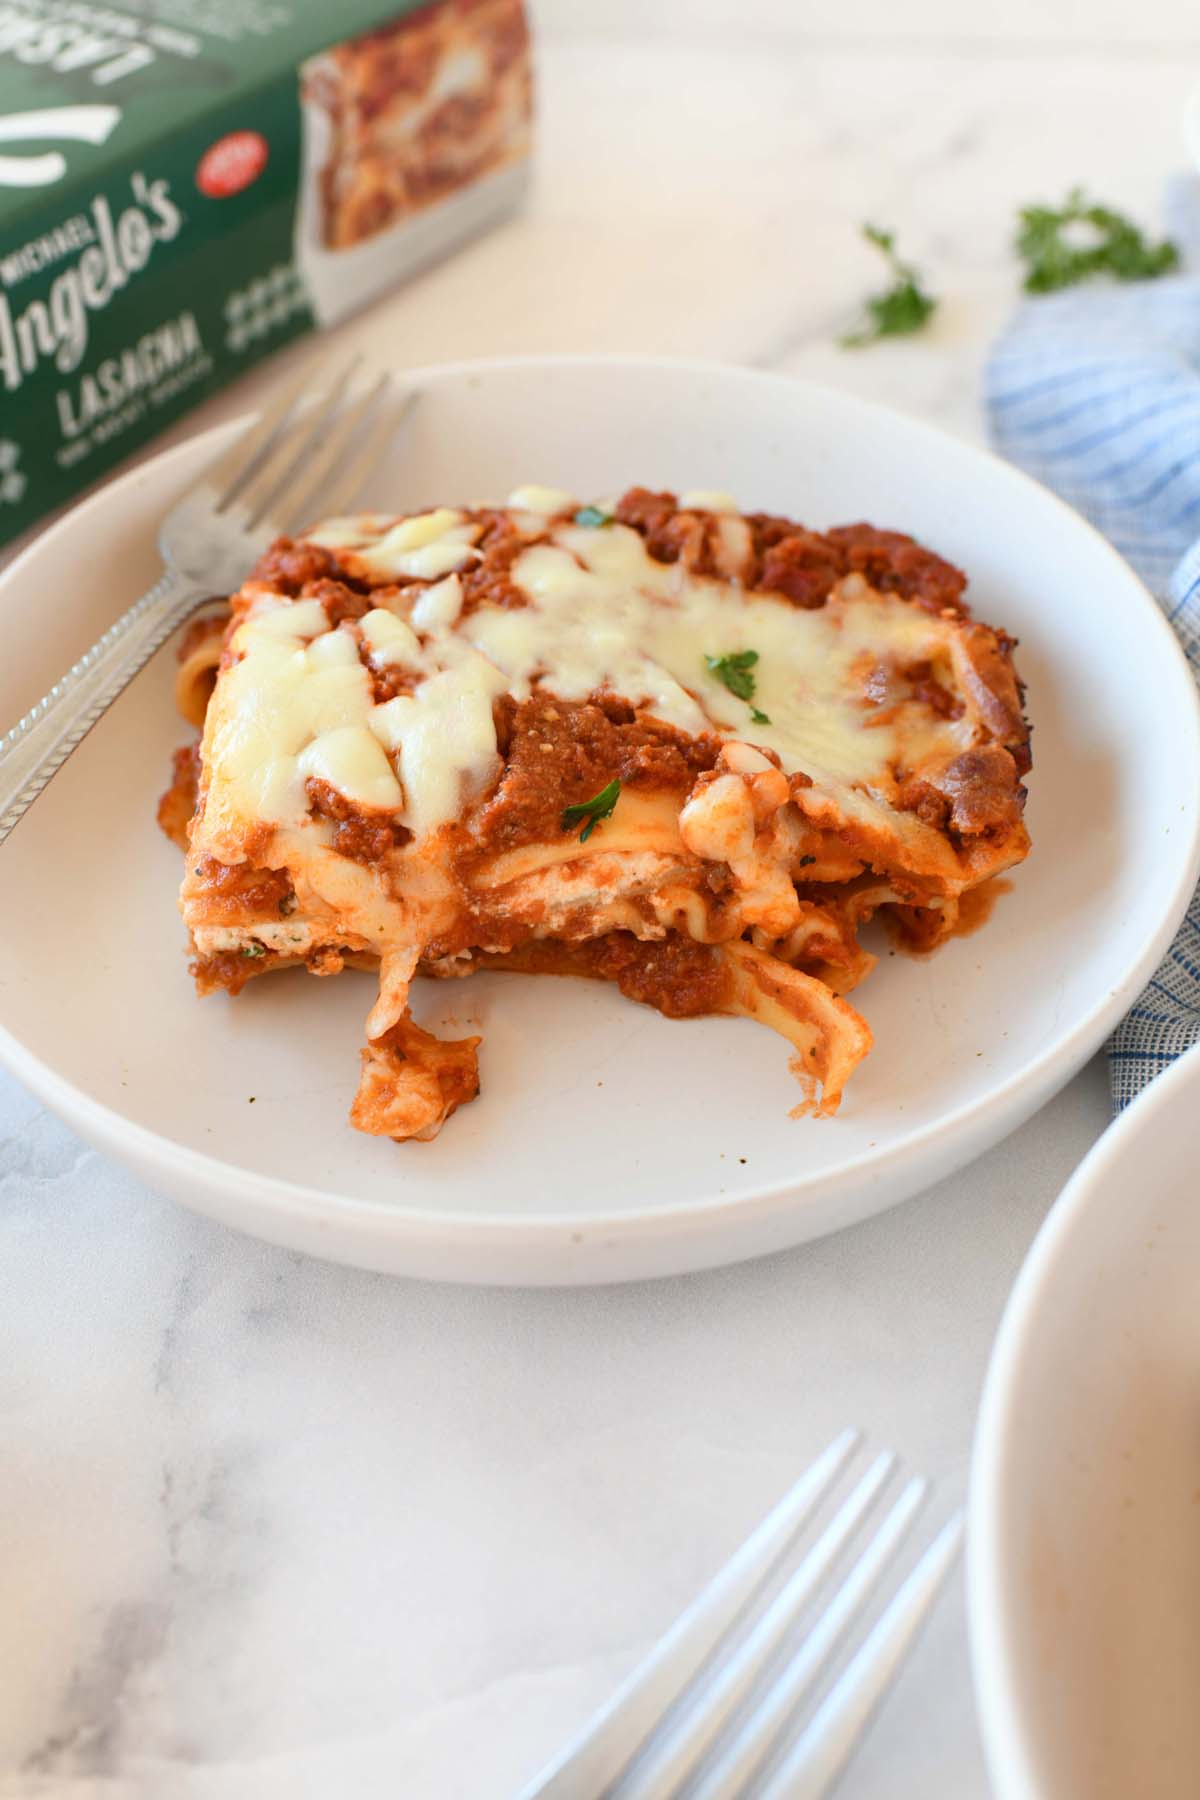 Slice of Lasagna on a small white plate with a fork.